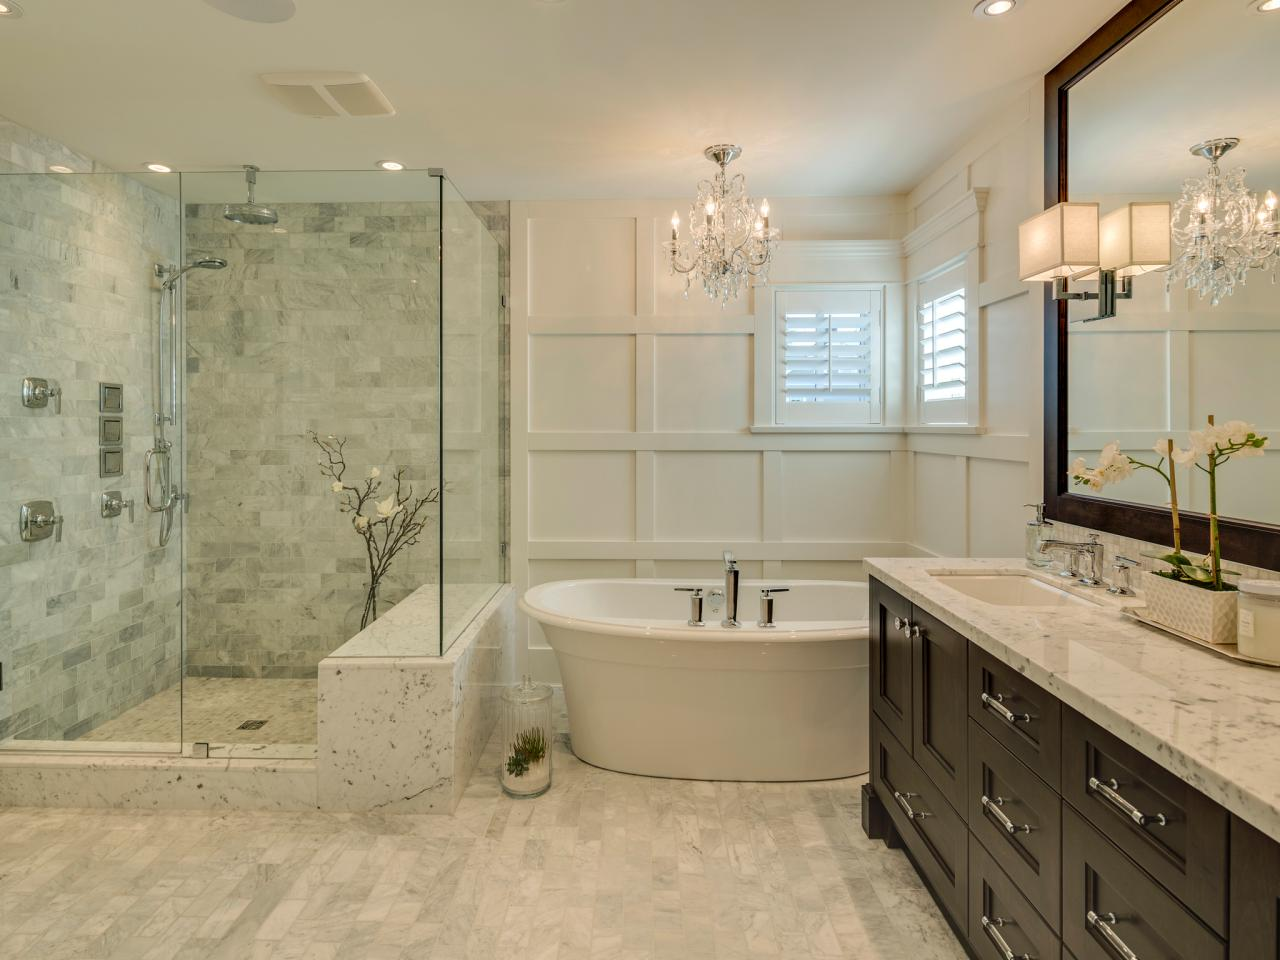 Large master bathroom ideas with glass walk in shower and luxury bathtub ideas you can be equipped crystals chandelier and wall lighting fixtures and marble countertops plus framed bathroom mirror